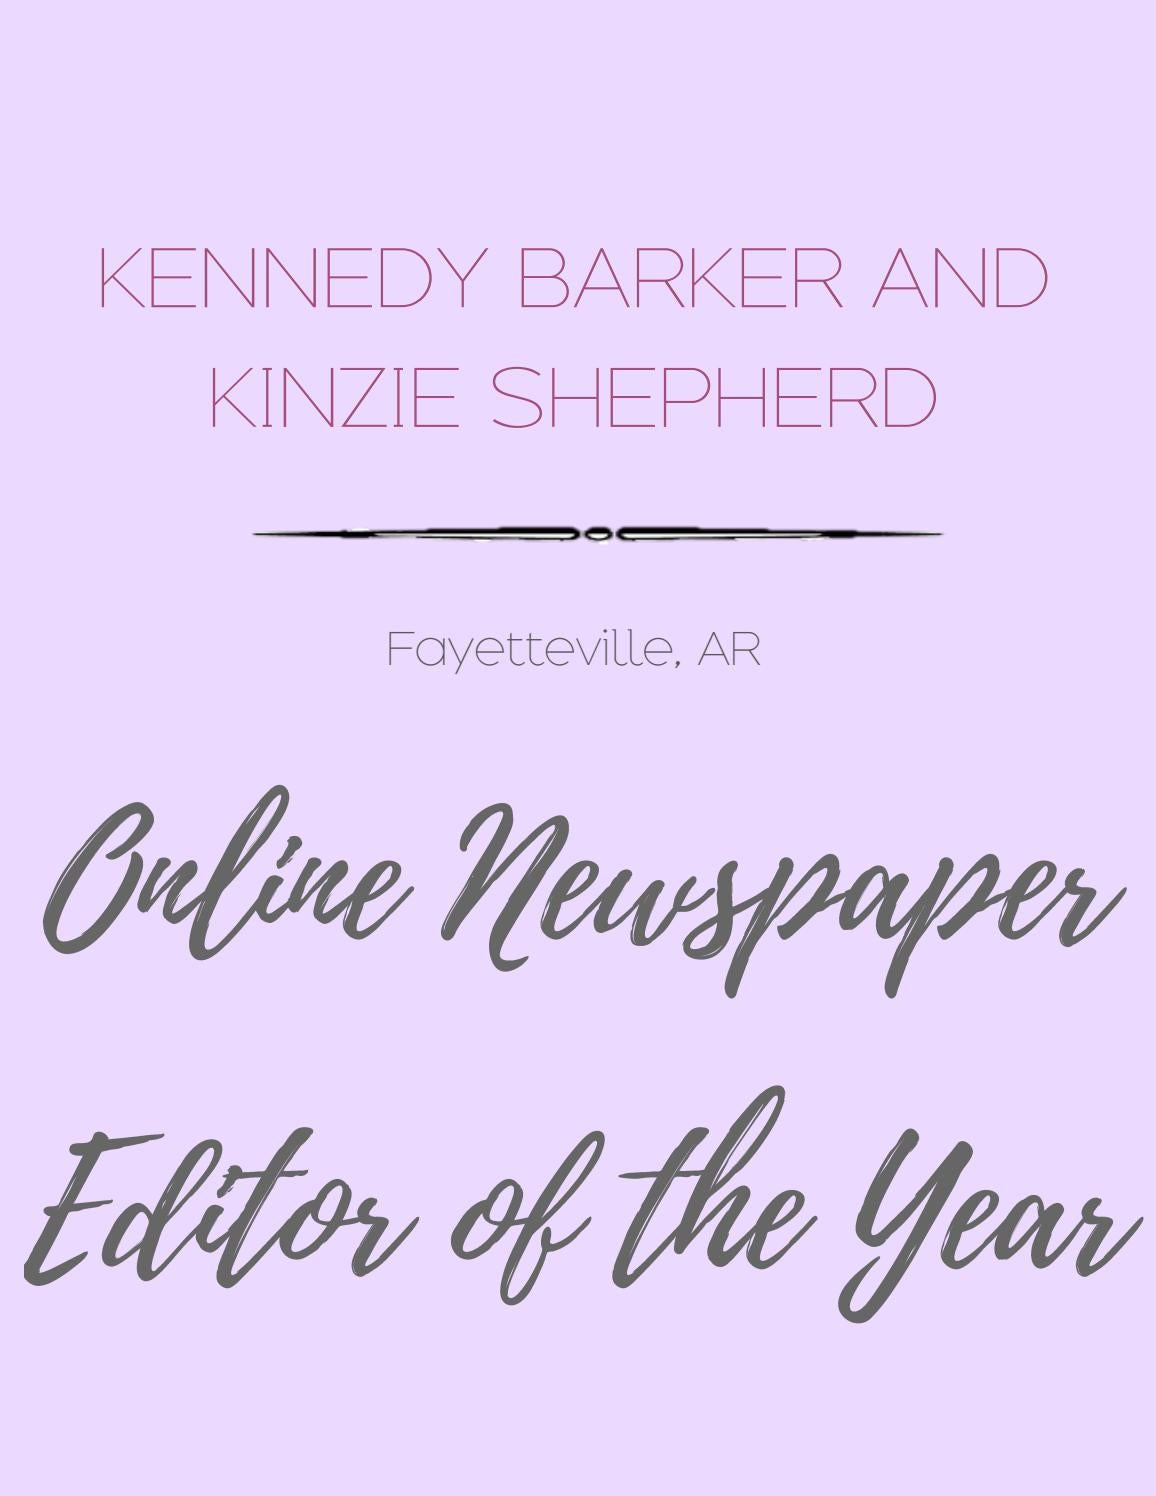 Calligraphy Photo Editor Online Online Editor Of The Year Submission By Register Newspaper Issuu